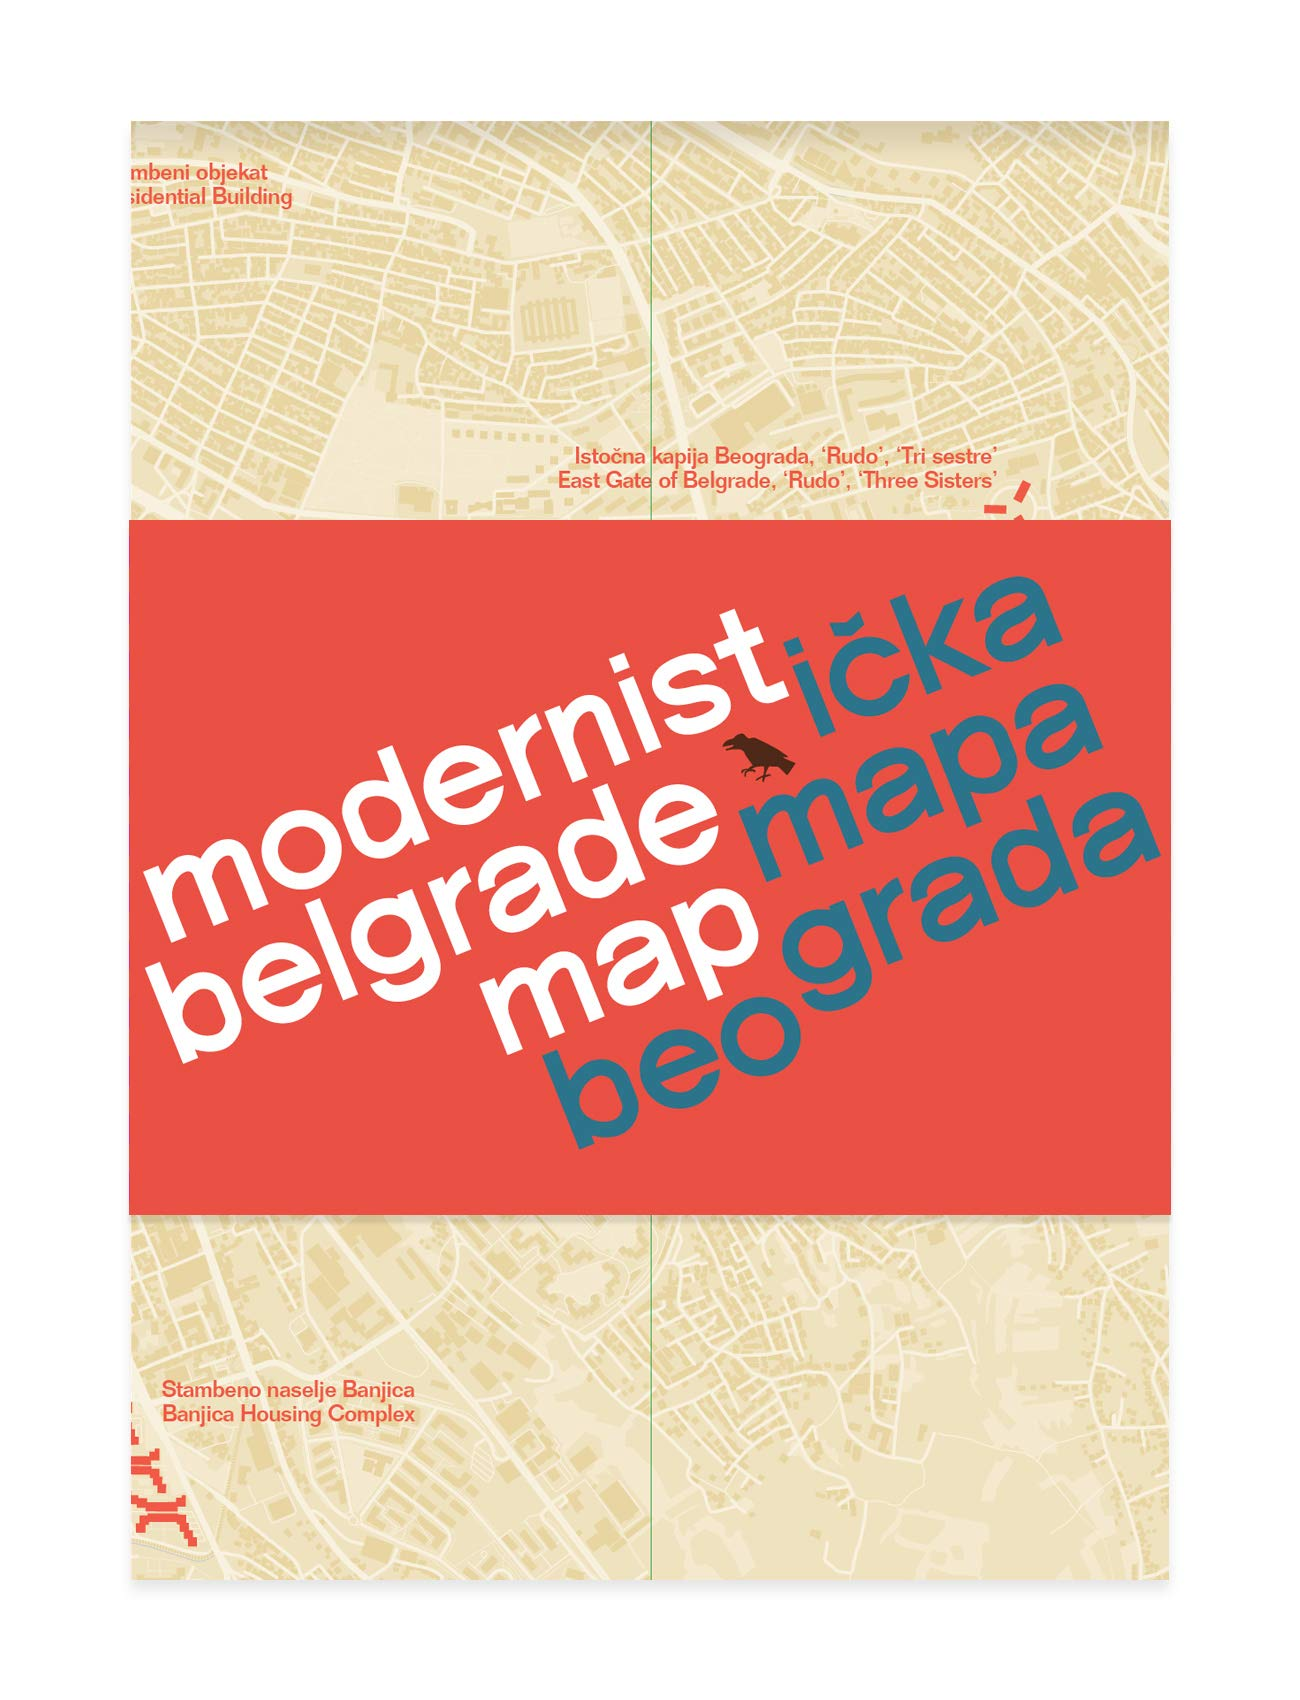 Modernist Belgrade Map Modernisticka Mapa Beograda Ljubica